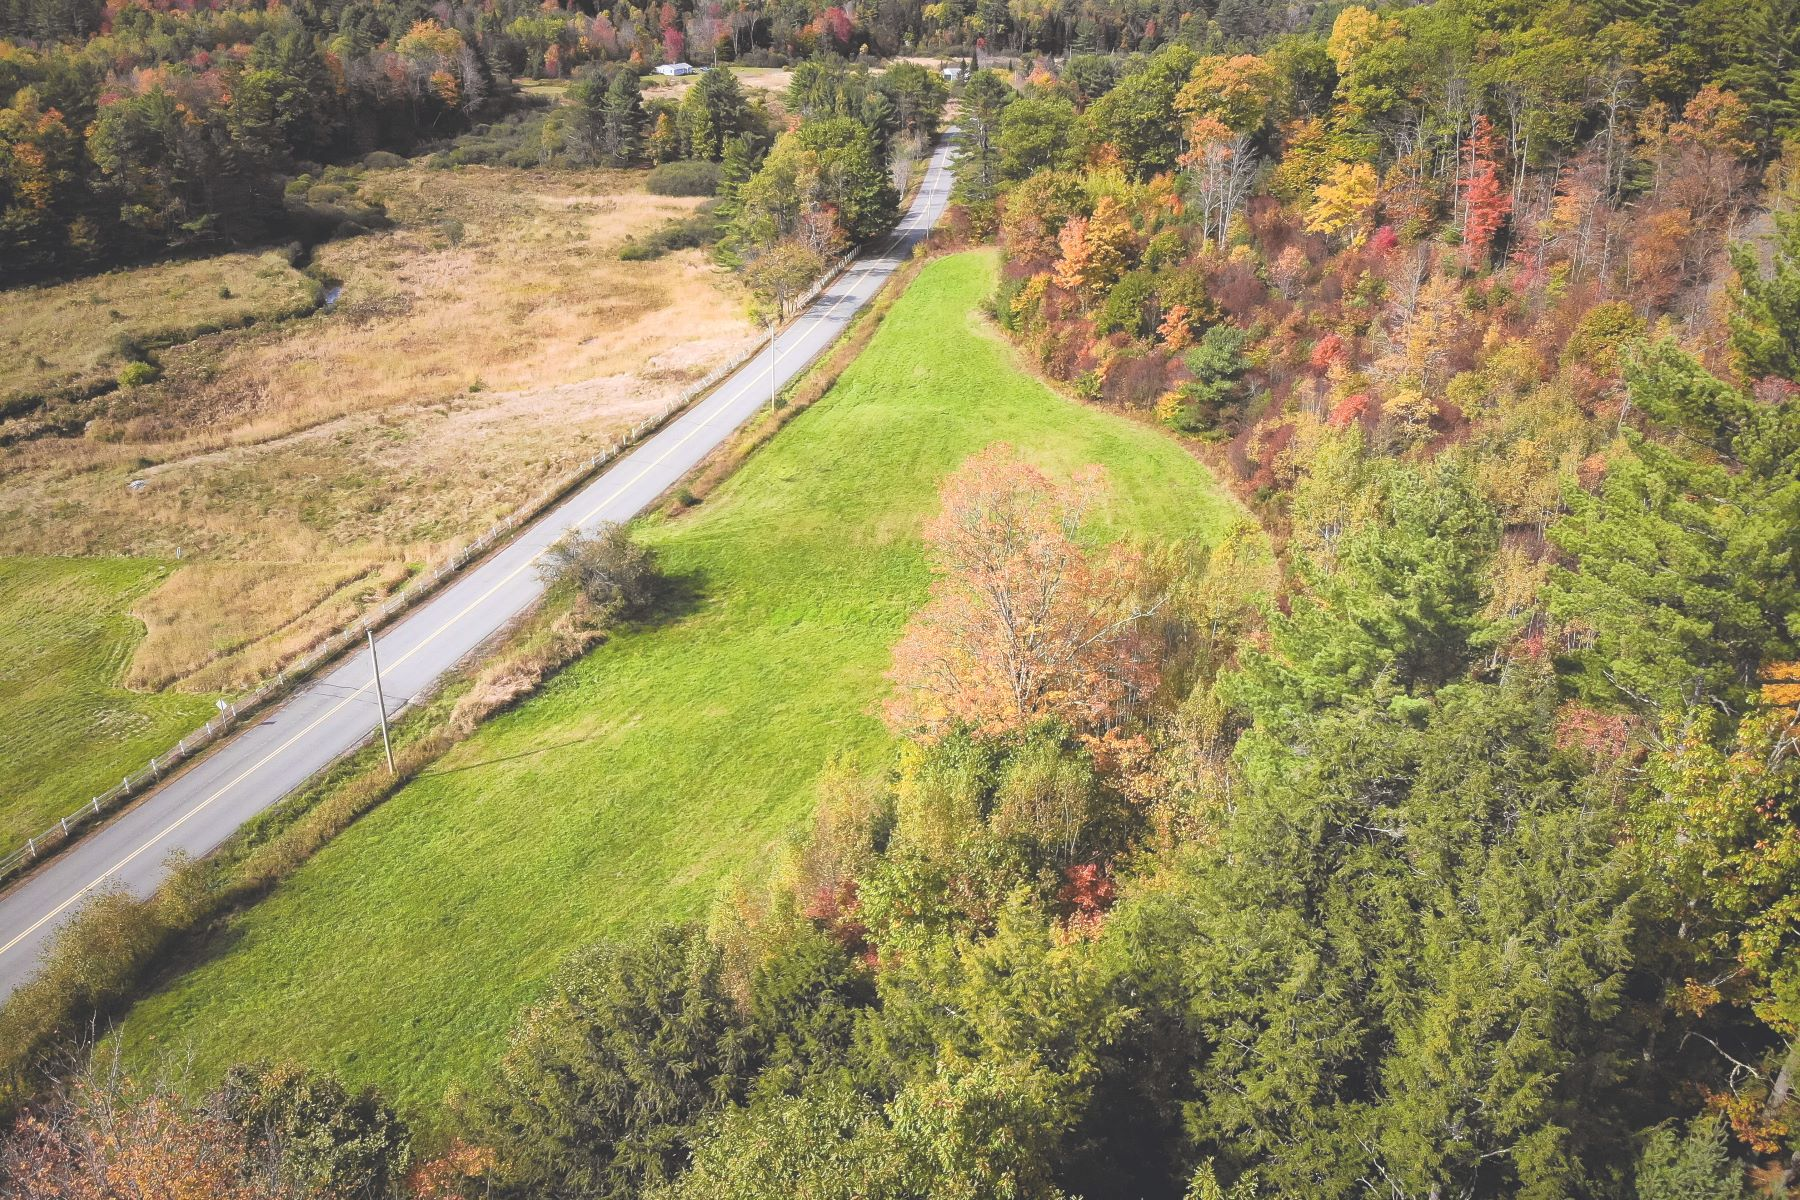 Land for Sale at Ten Acres in Newbury 0 Scotch Hollow Rd Newbury, Vermont 05051 United States